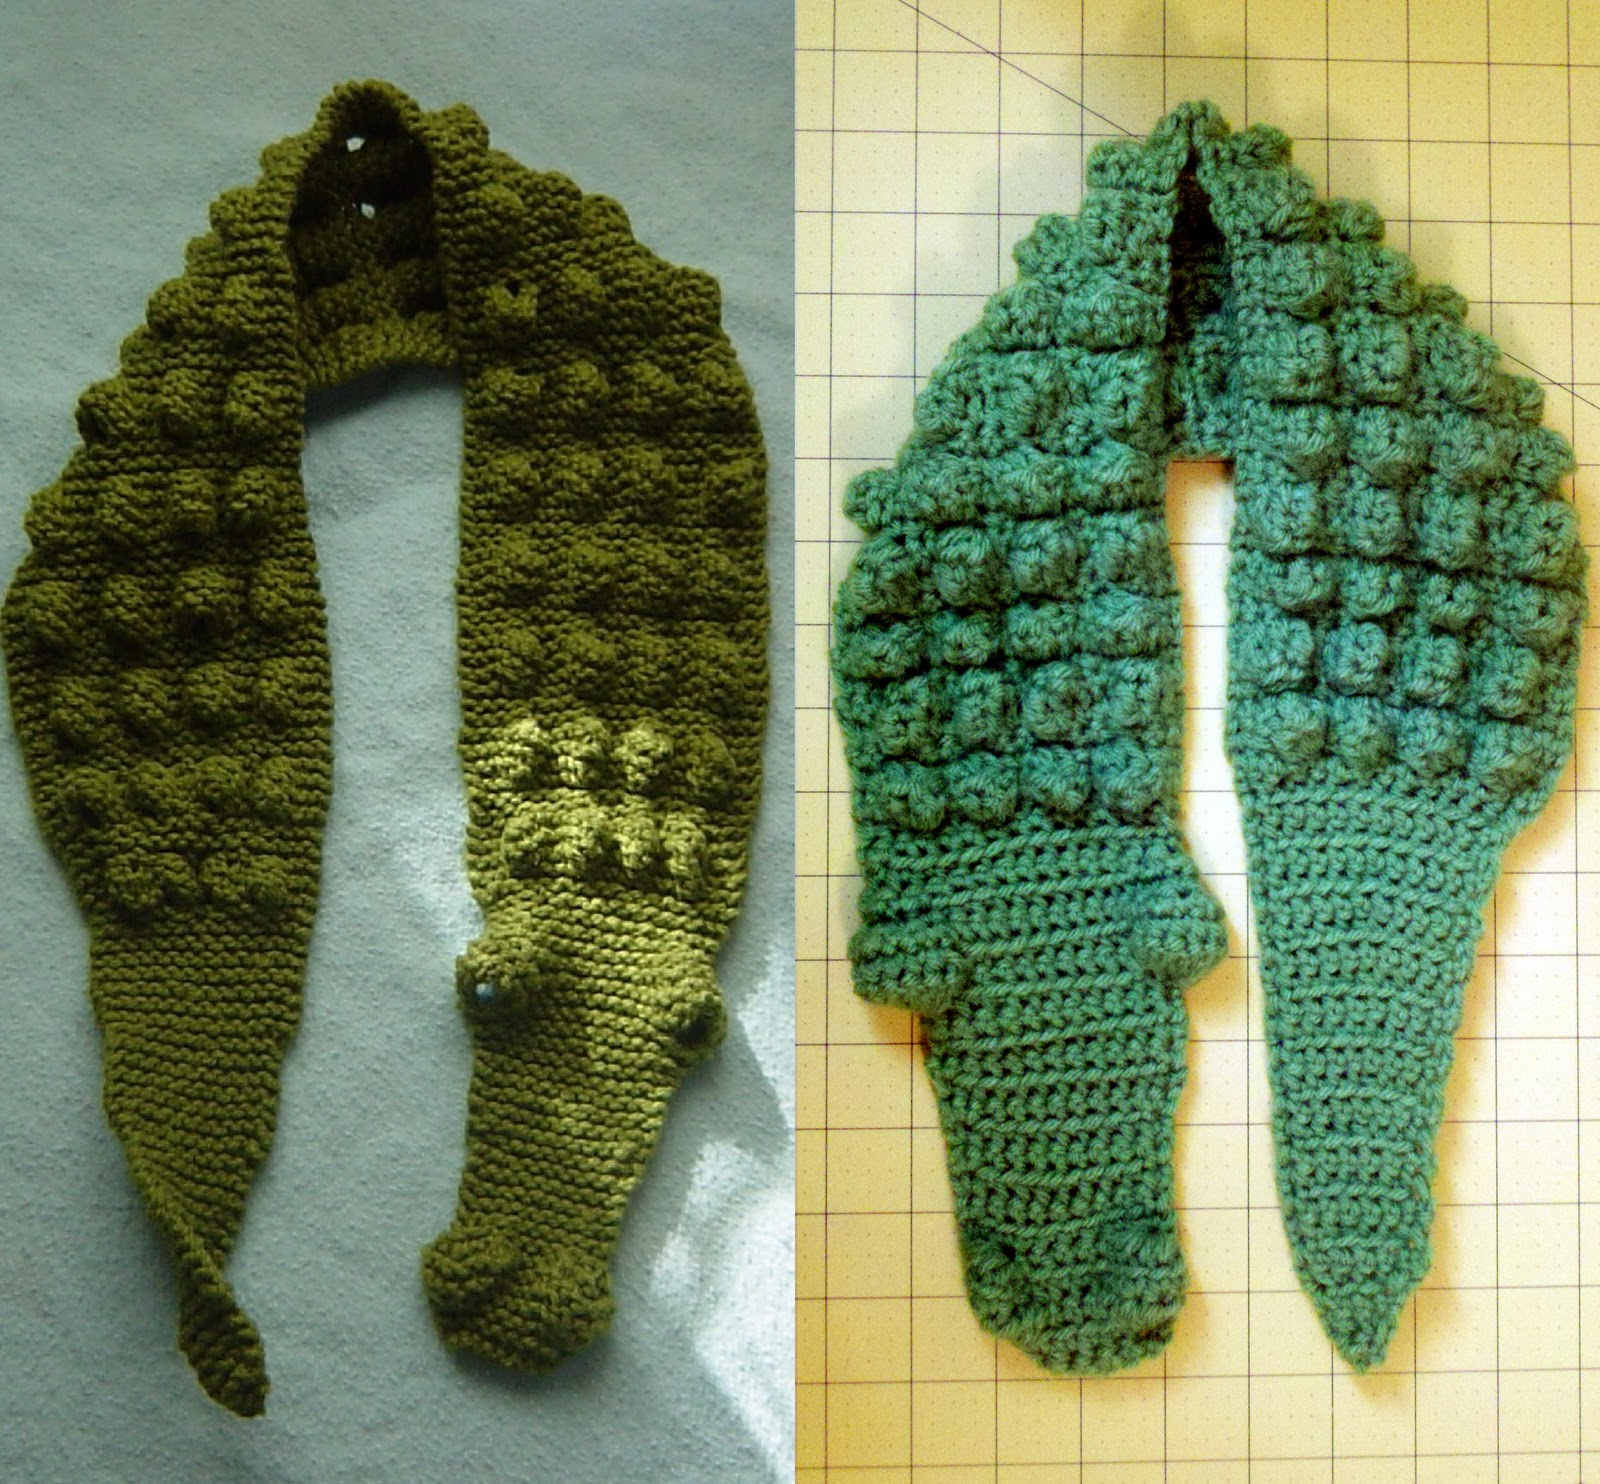 Free Knitting Pattern For Alligator Scarf : Bright and Shiny - Lovely and Good: Crochet Gator Scarf for Kids - Pattern